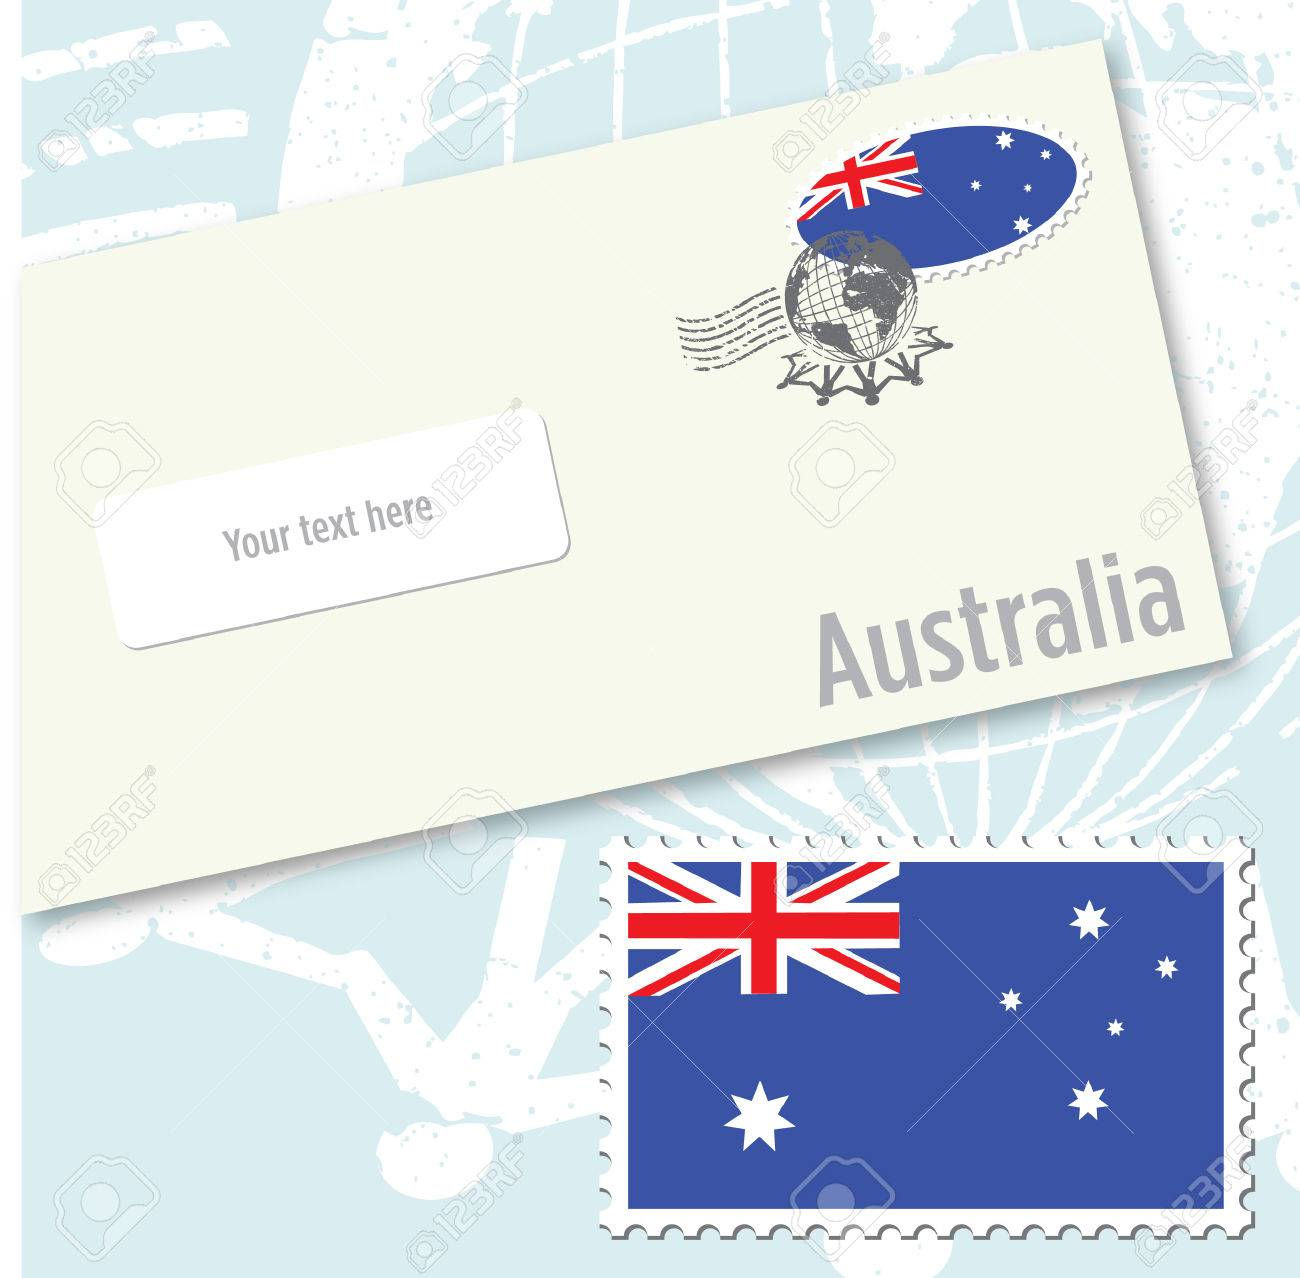 australia country flag stamp and envelope design royalty free